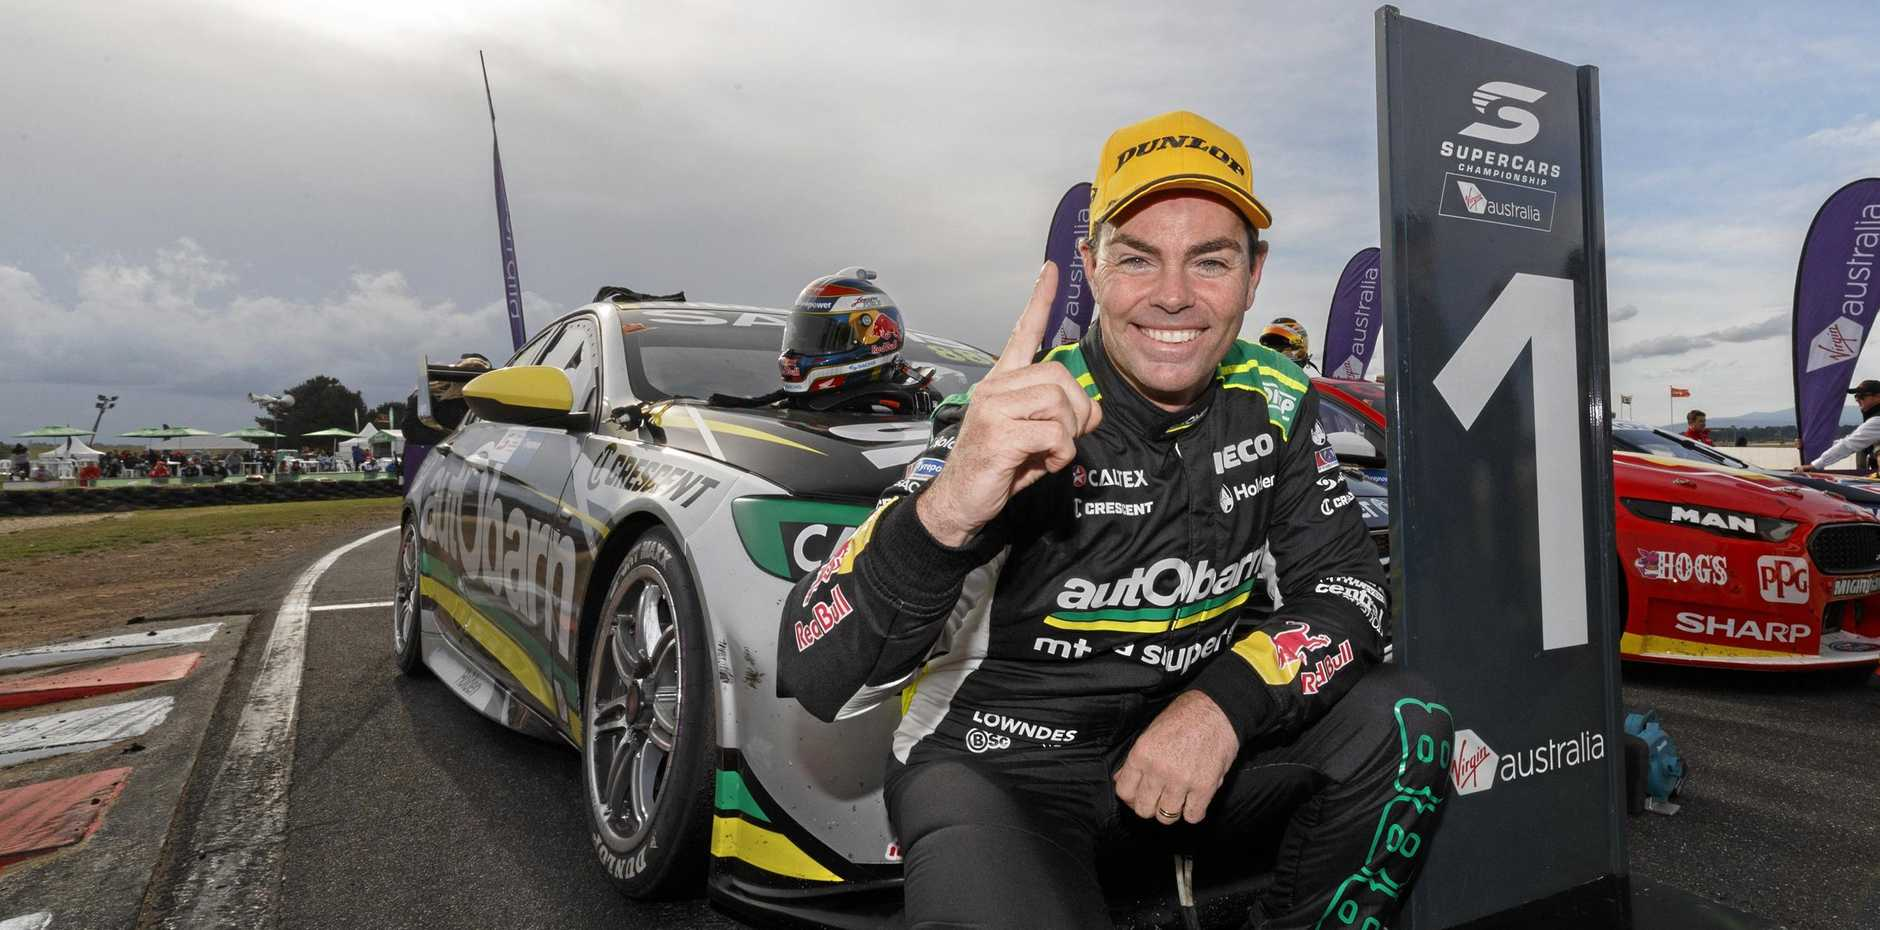 POPULAR NUMBER ONE: Supercars ace Craig Lowndes announces his retirement during the Townsville round of this year's series. He will race for the final time in Ipswich next weekend.